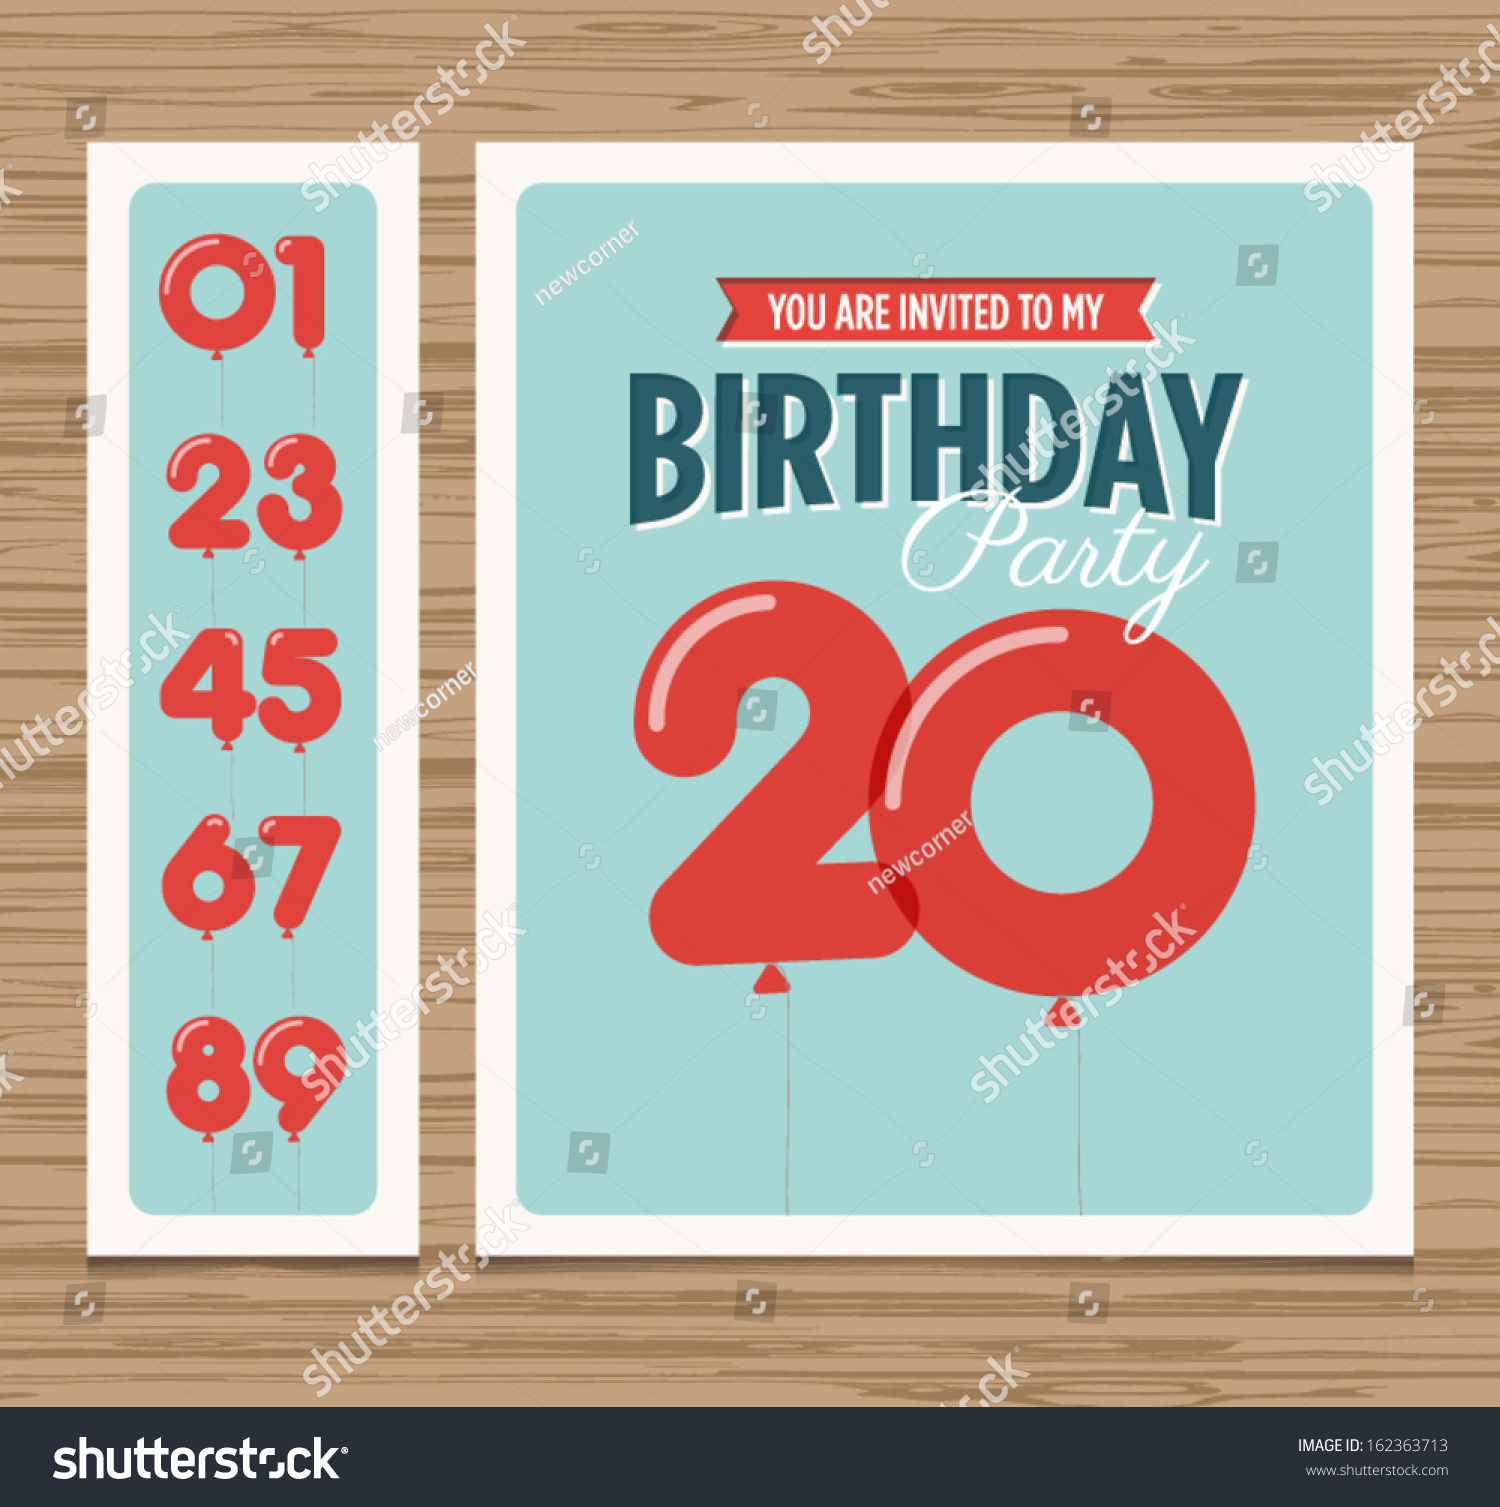 Birthday Party Invitation Card Balloons Numbers Vector – Party Invitation Card Design